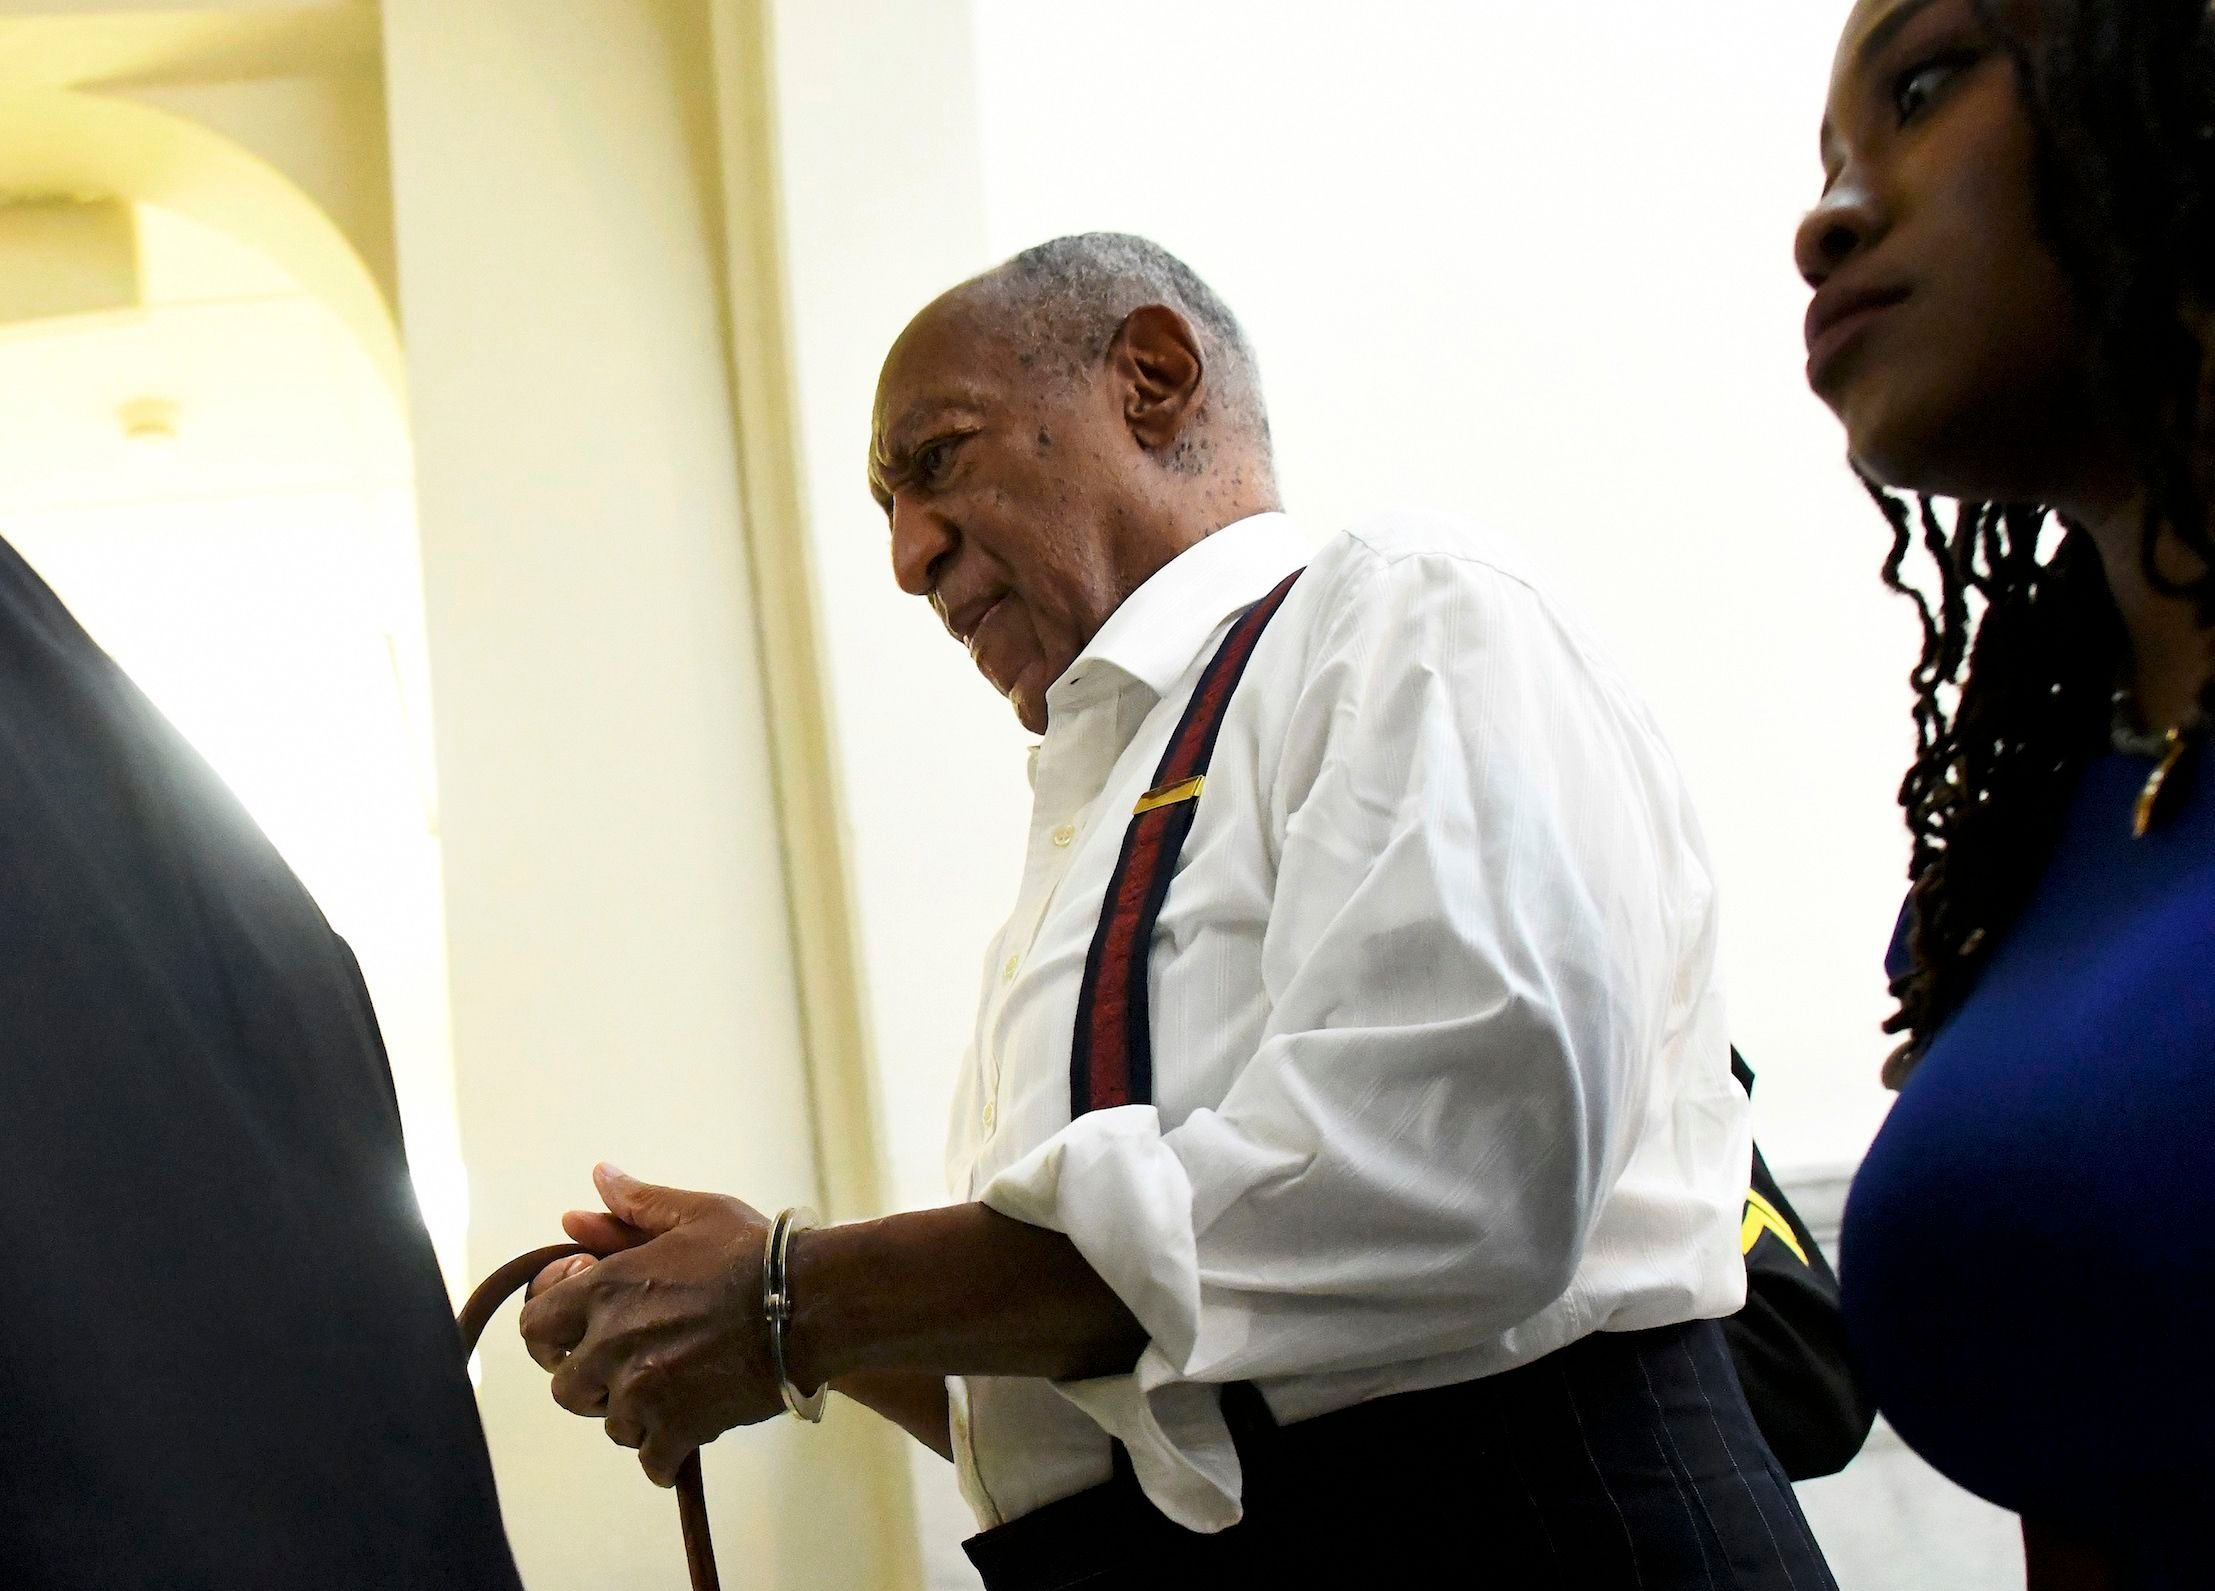 Mandatory Credit: Photo by Mark Makela/AP/REX/Shutterstock (9894720a)                       Bill Cosby is taken away in handcuffs after he was sentenced to three-to 10-years for felony sexual assault, in Norristown, Pa                       Bill Cosby, Norristown, USA - 25 Sep 2018